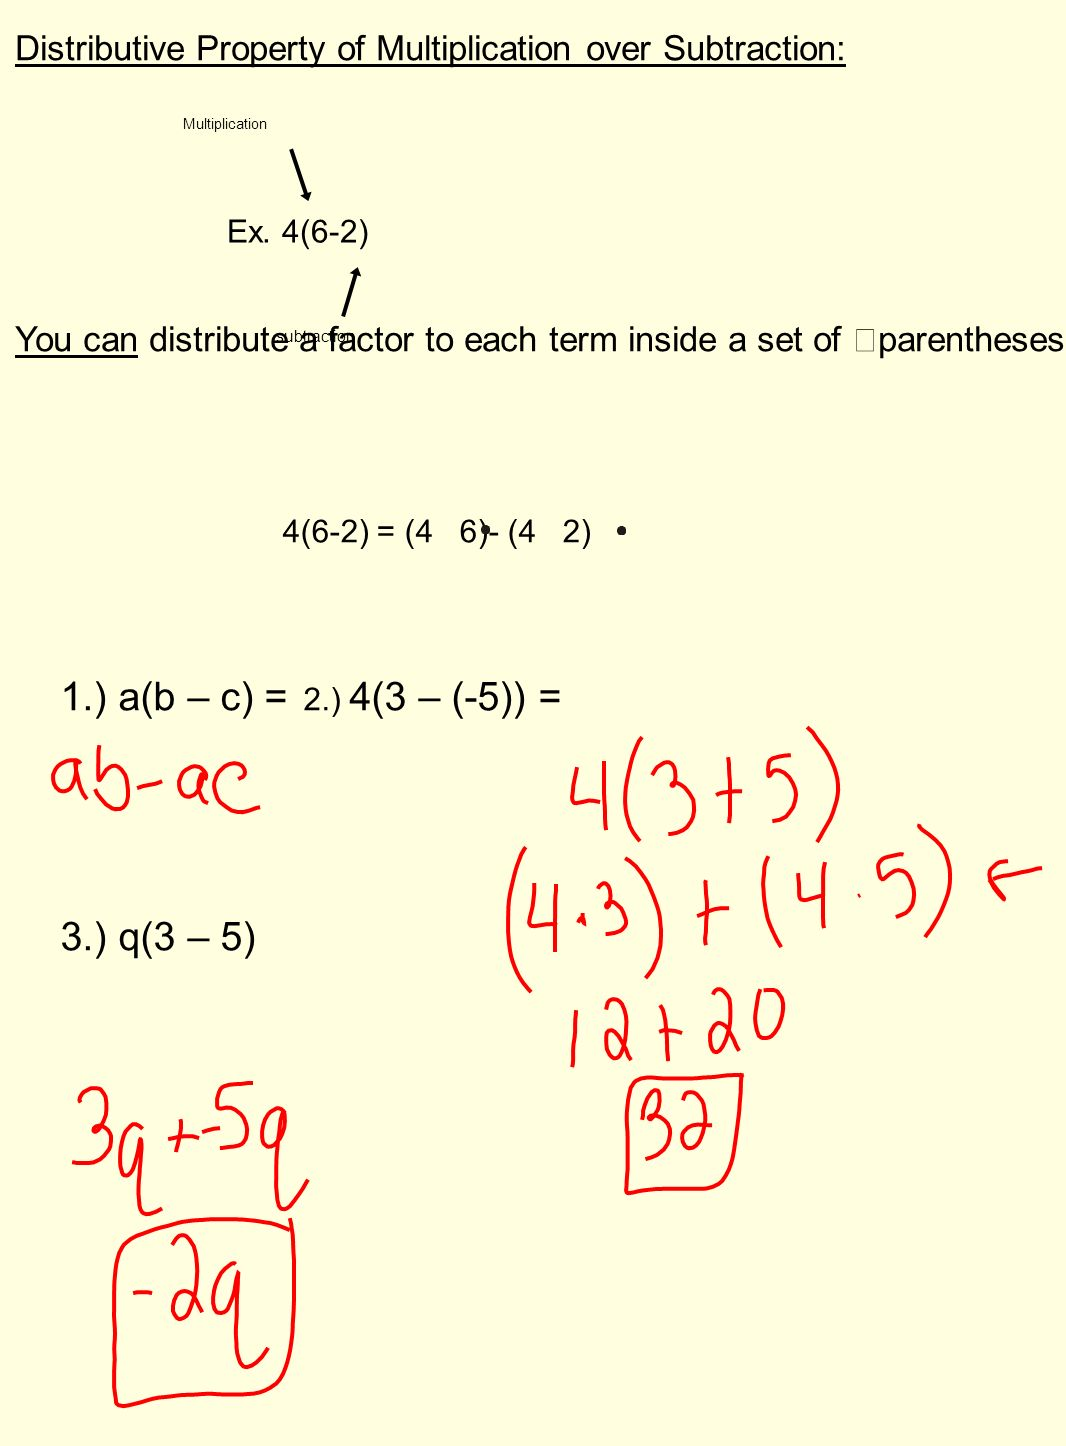 Distributive Property of Multiplication over Addition and Subtraction